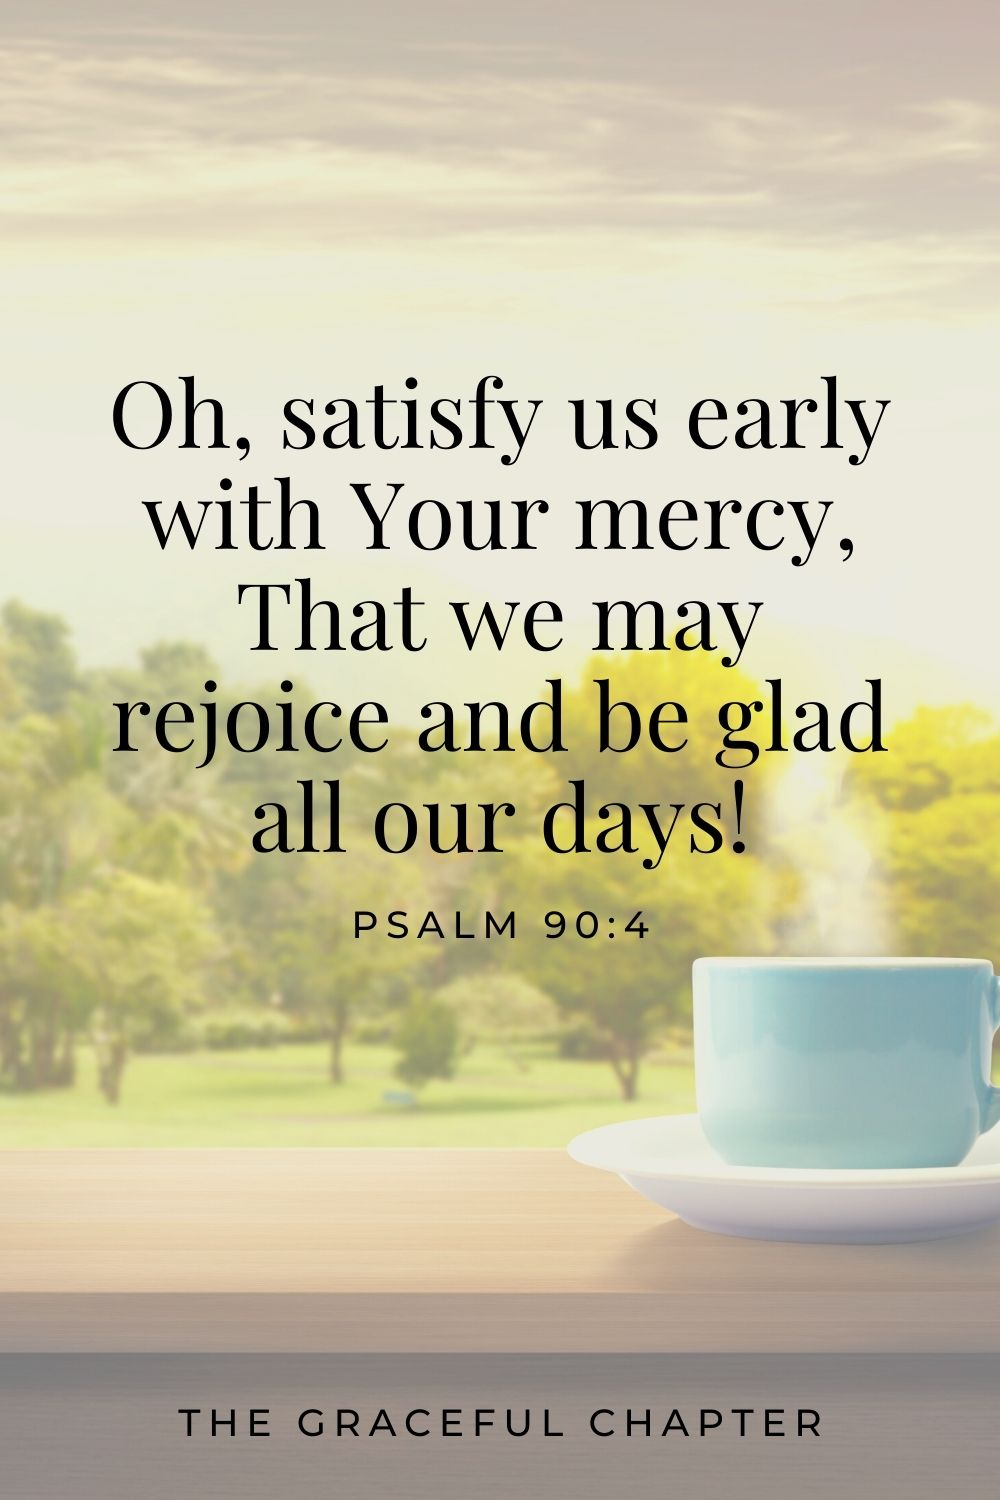 Oh, satisfy us early with Your mercy, That we may rejoice and be glad all our days! Psalm 90:4